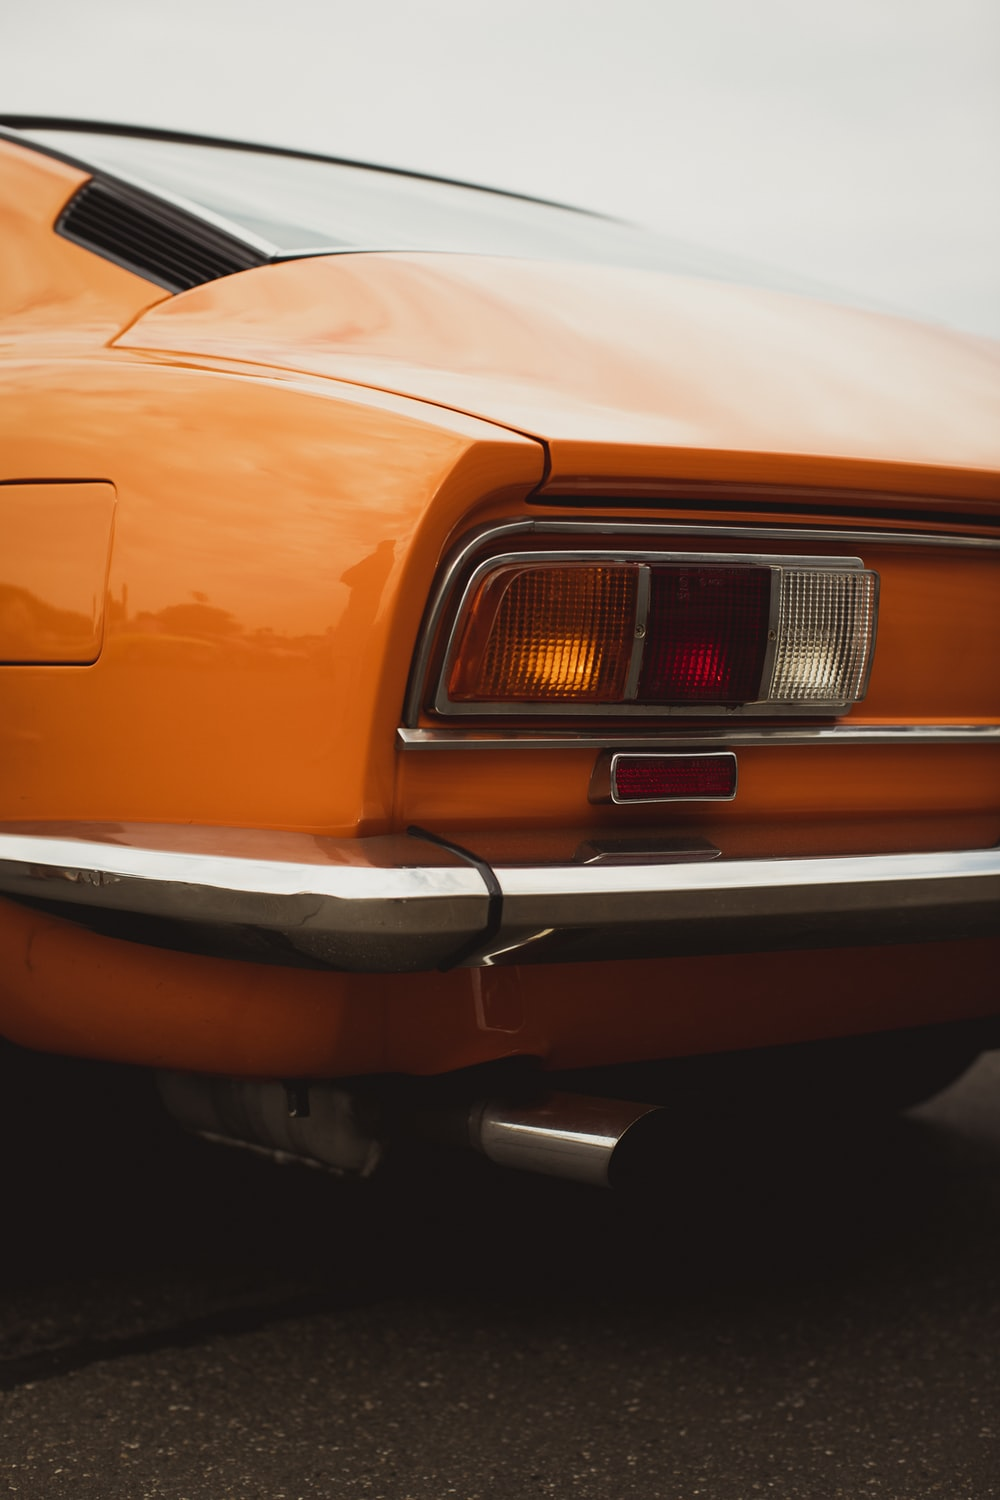 orange car with white and black lights